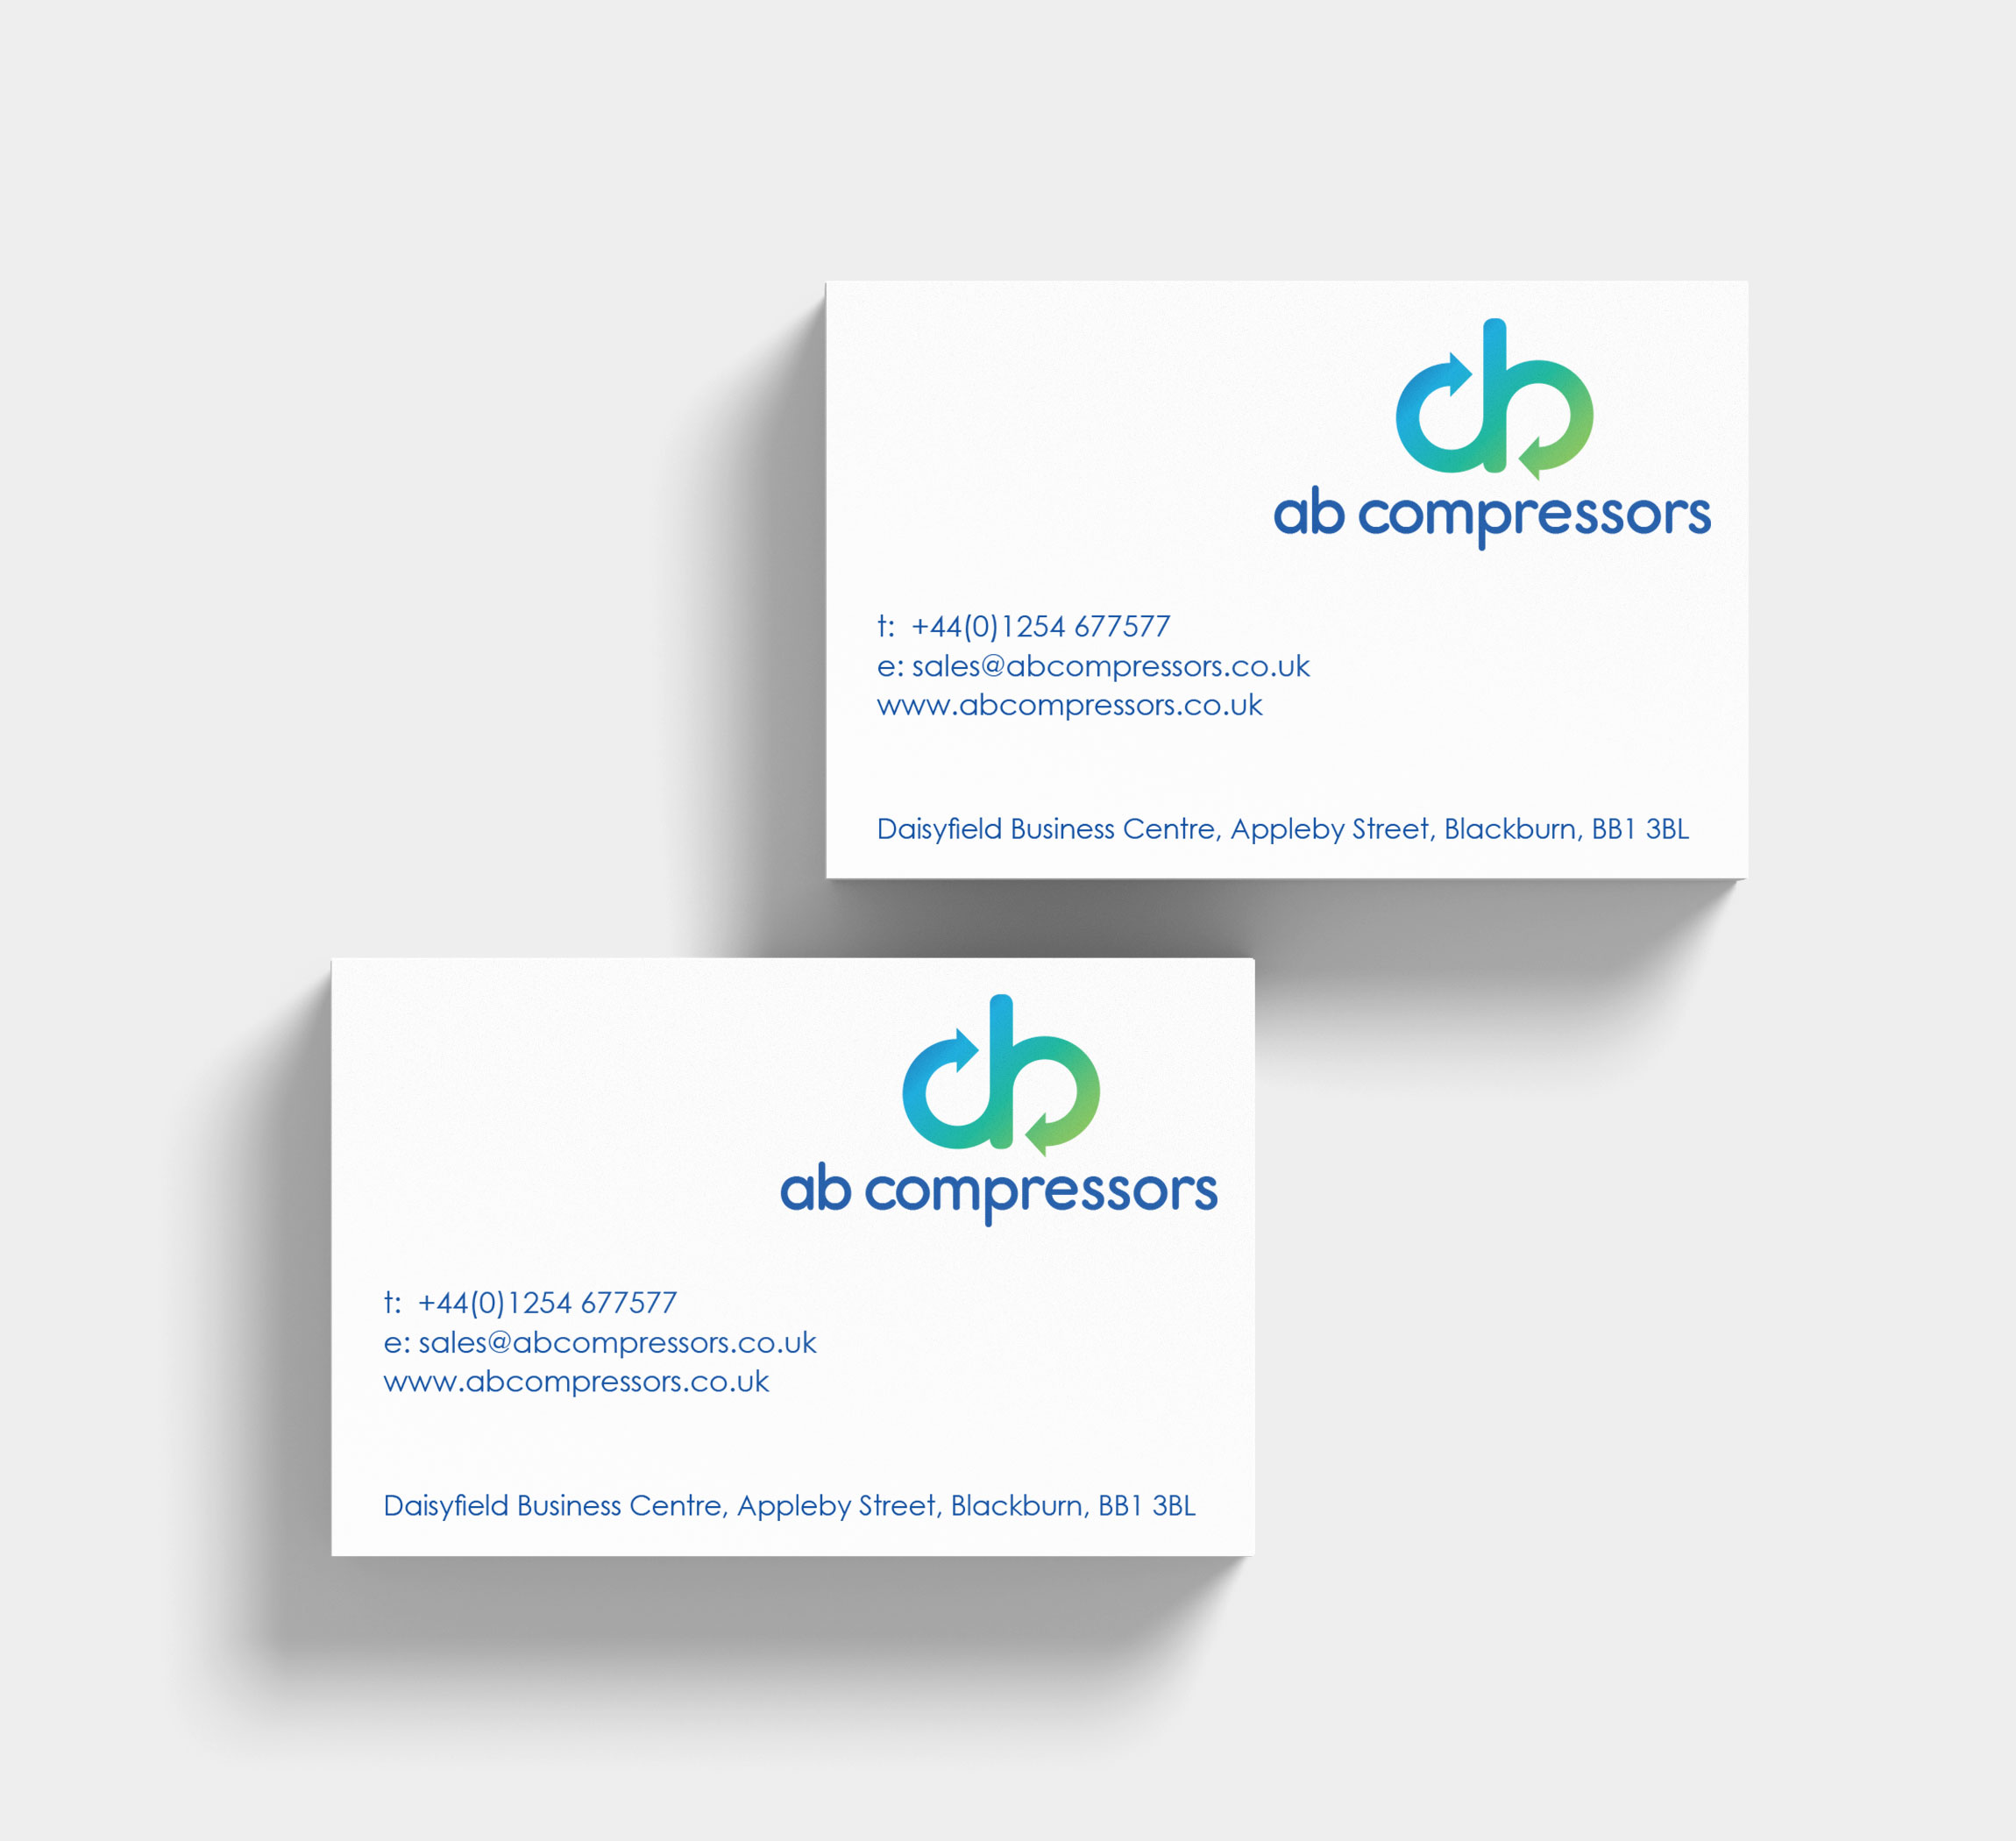 AB Compressors Business Card